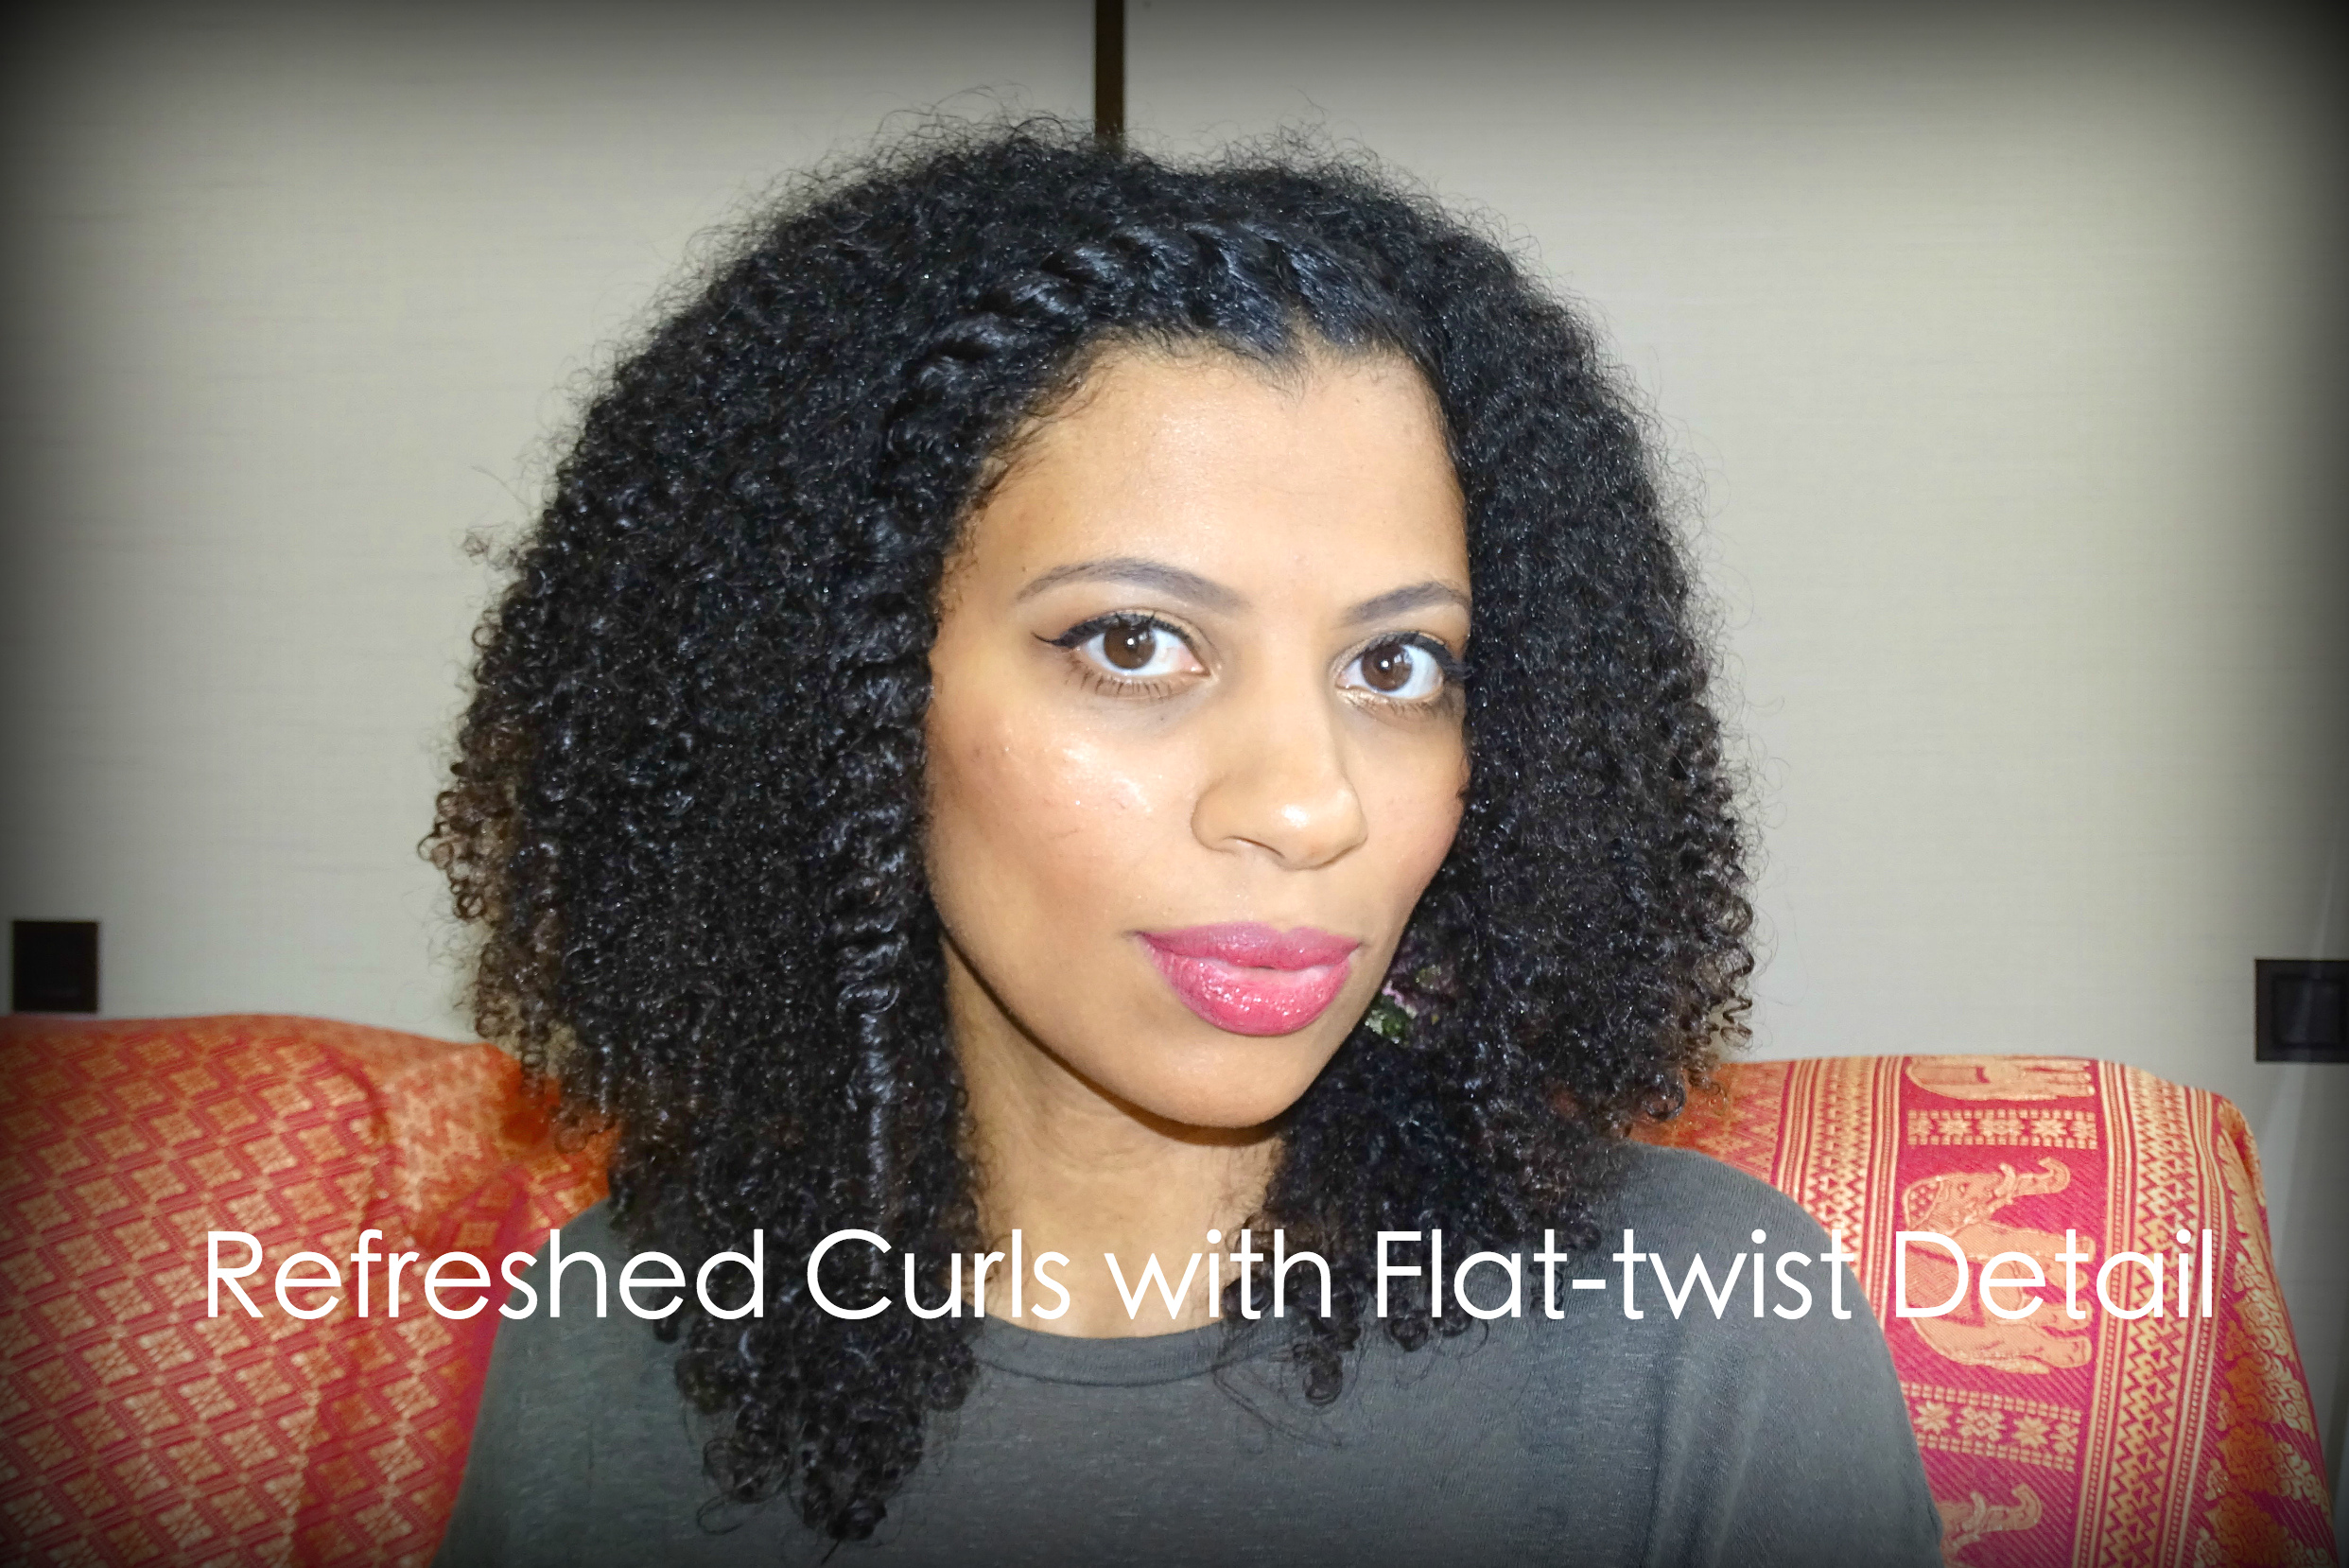 Eleanor J'adore - Refreshed curls with flat-twist detail on natural hair